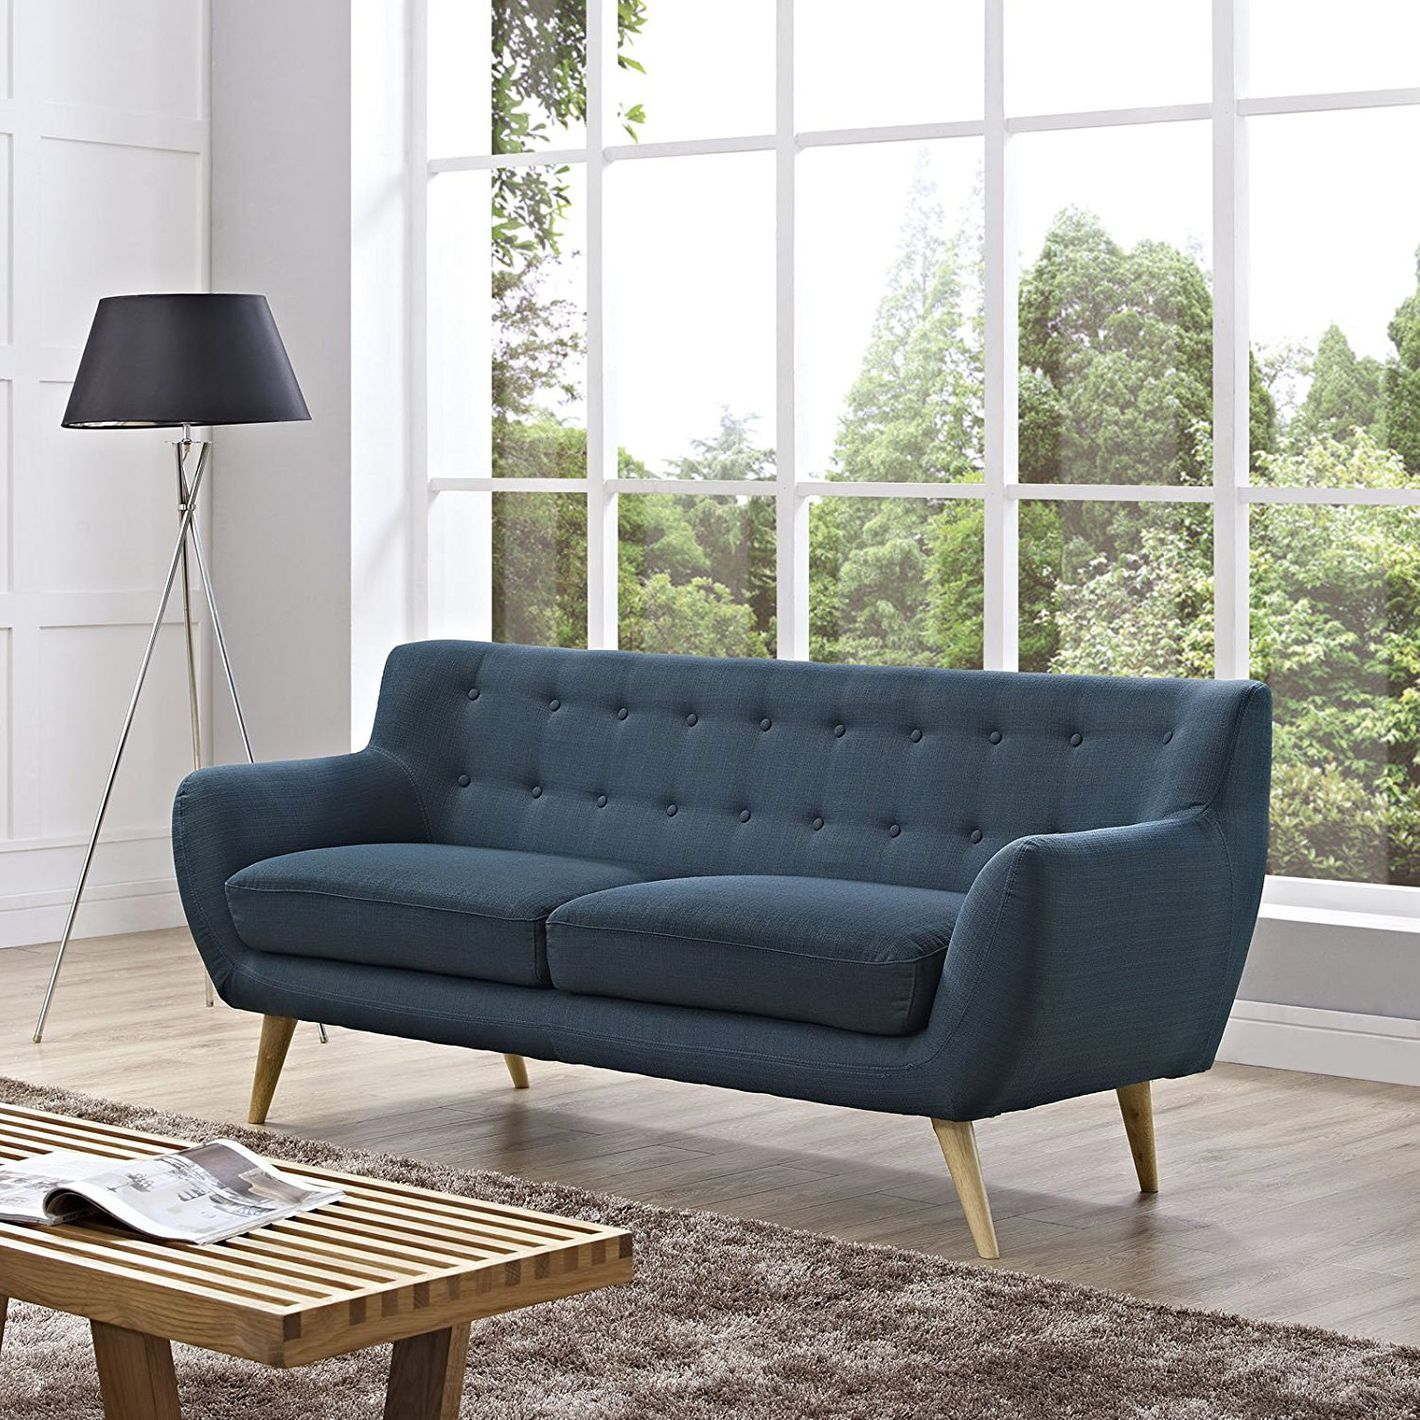 Best Affordable Sofa i recently bought the hof breva fabric sofa for my living room and it has been a great investment as indias leading suppliers of ergonomic chairs The Best Sofas Under 500